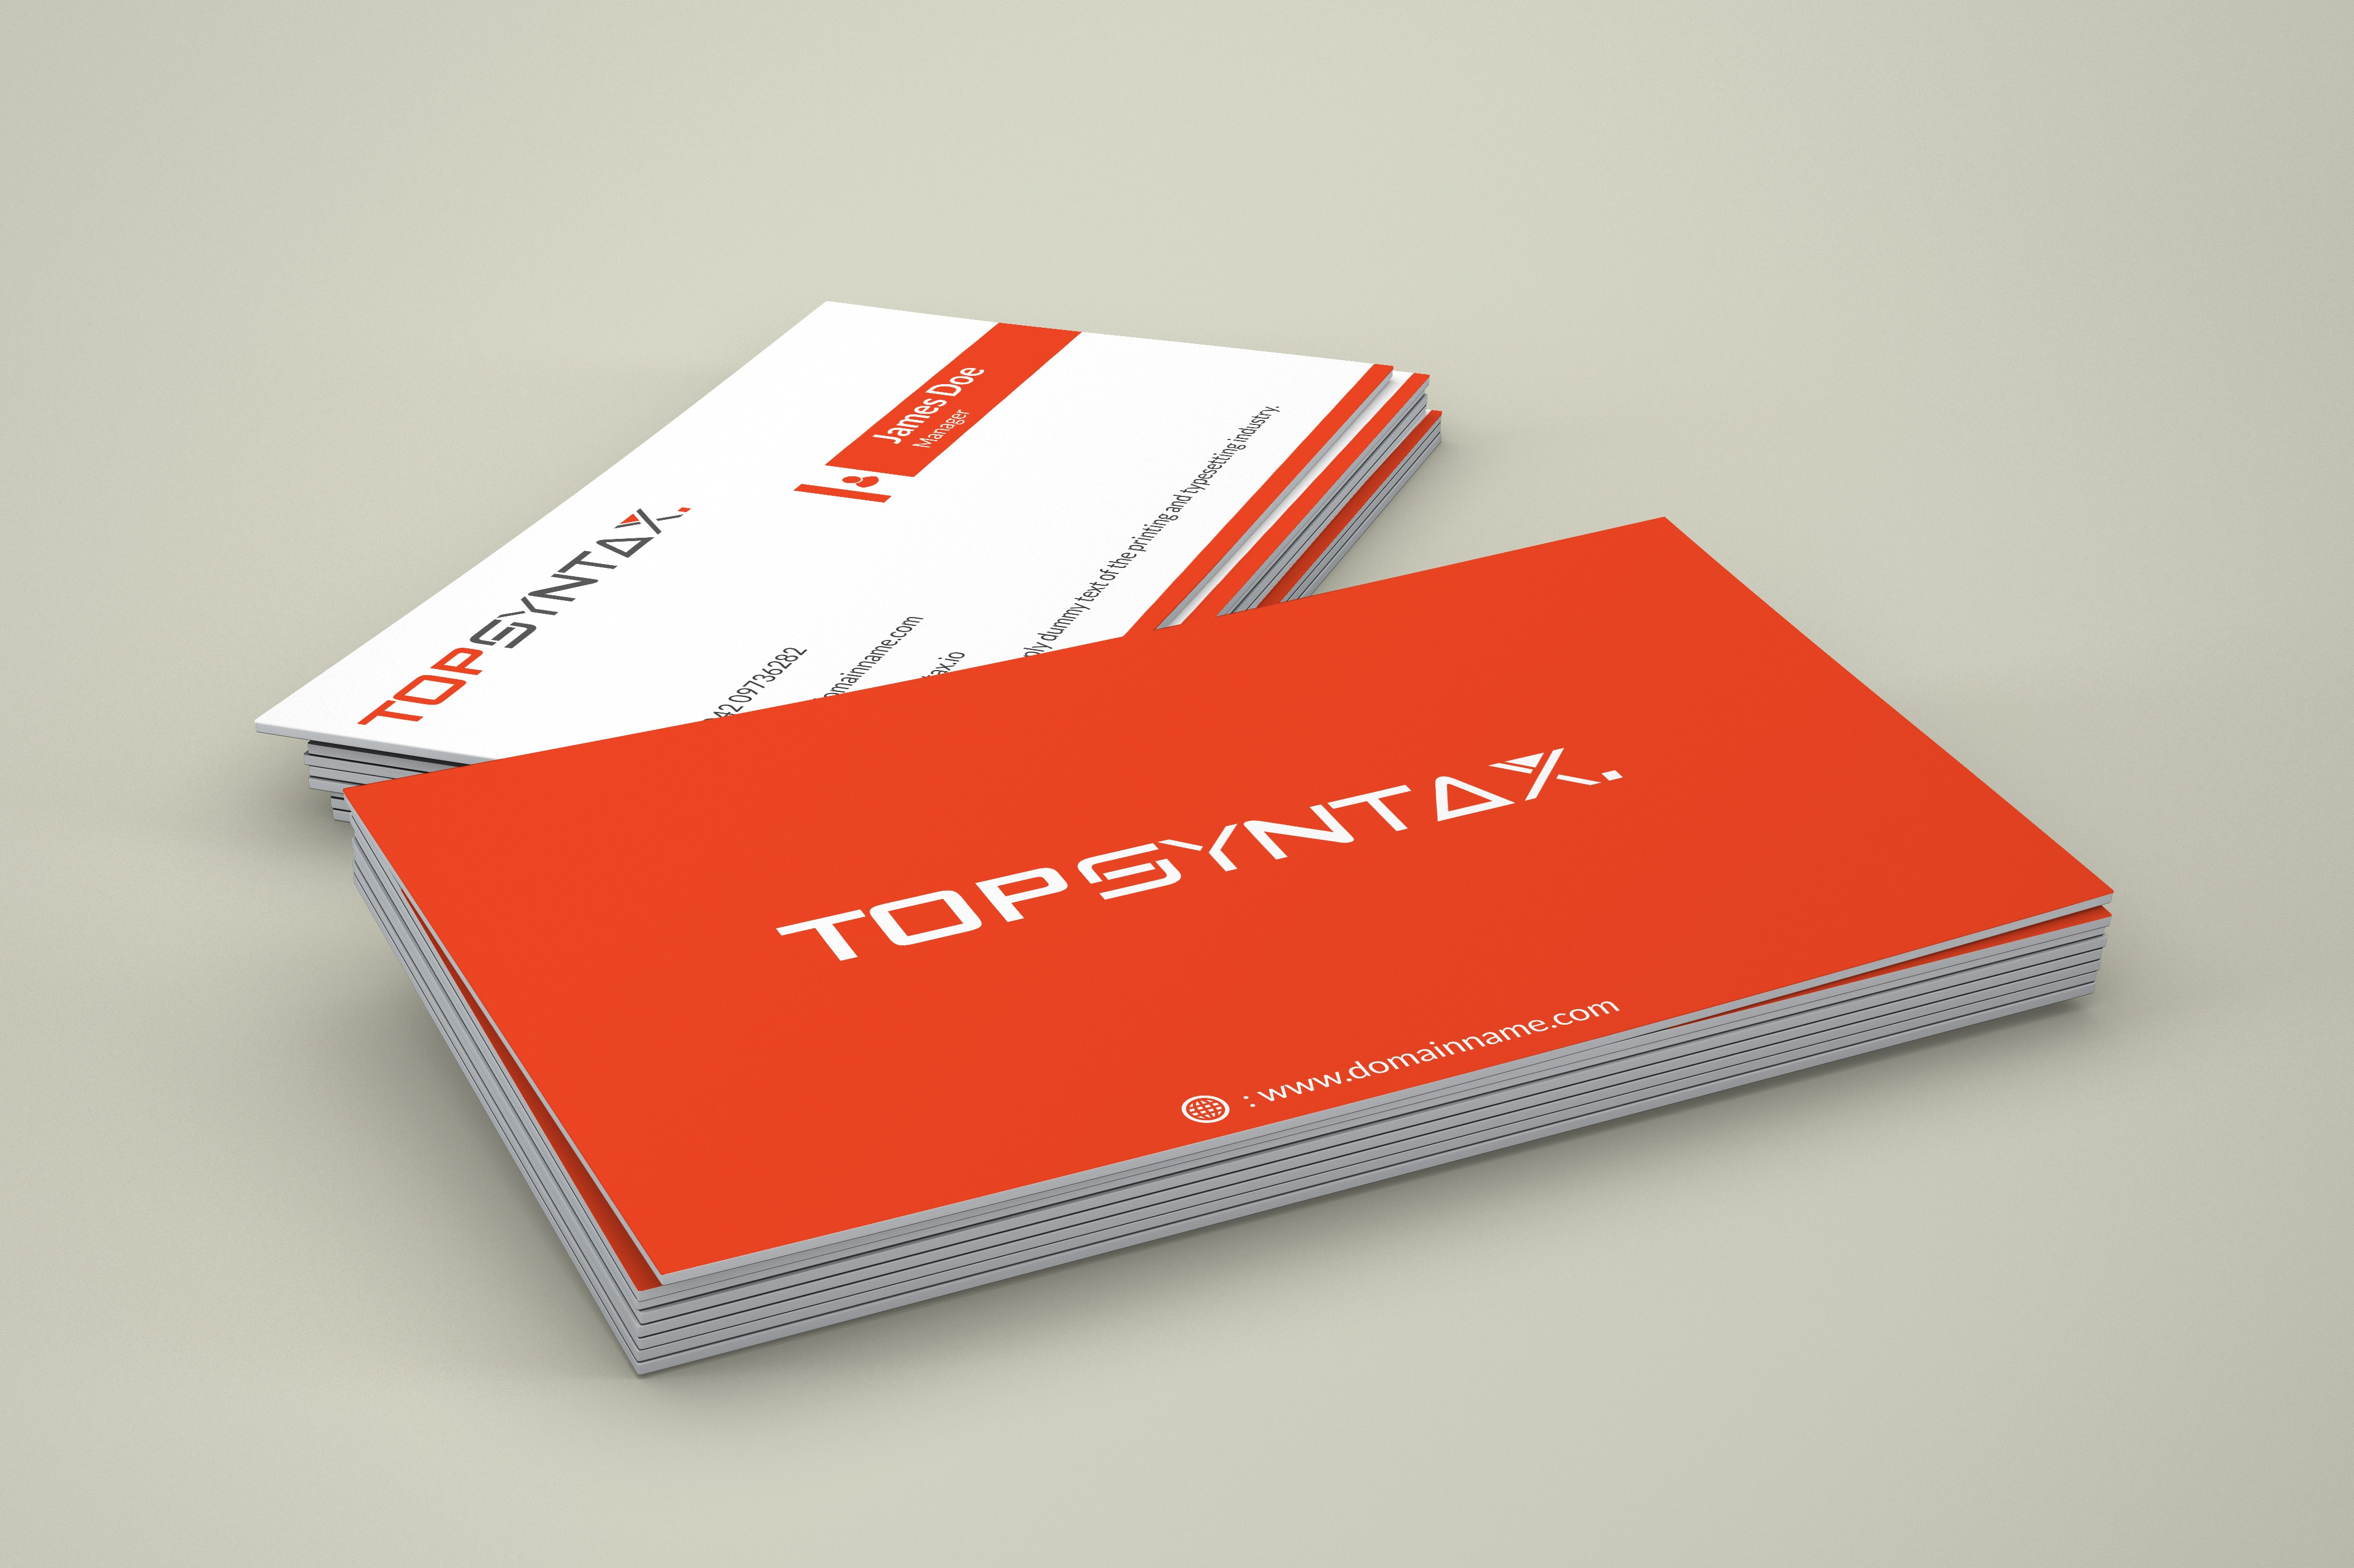 Top Syntax Bussiness Card